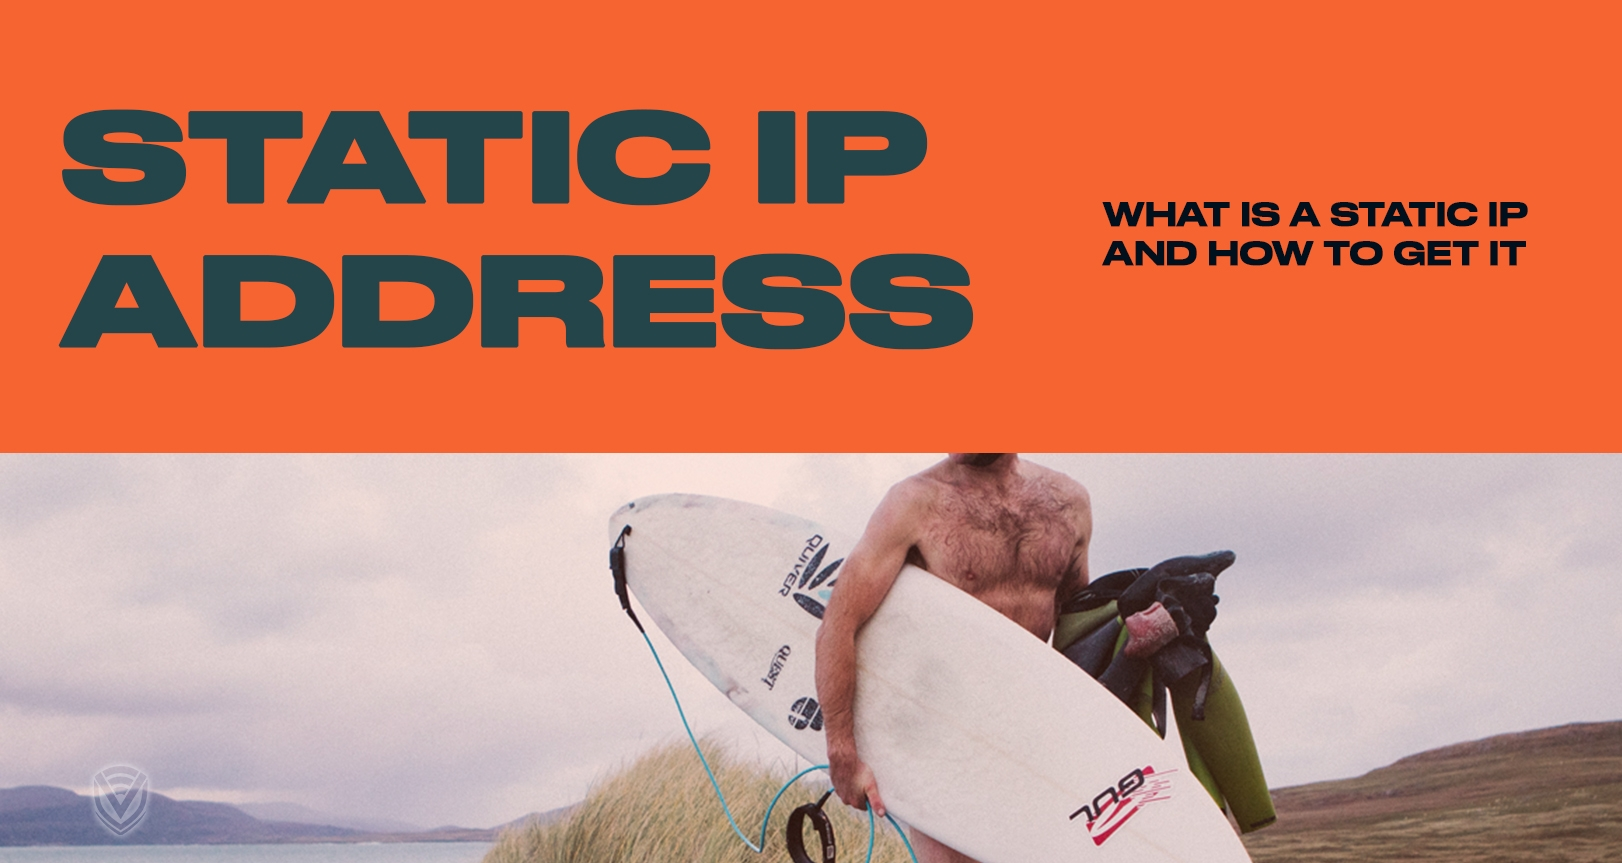 How to Get a Static IP Address